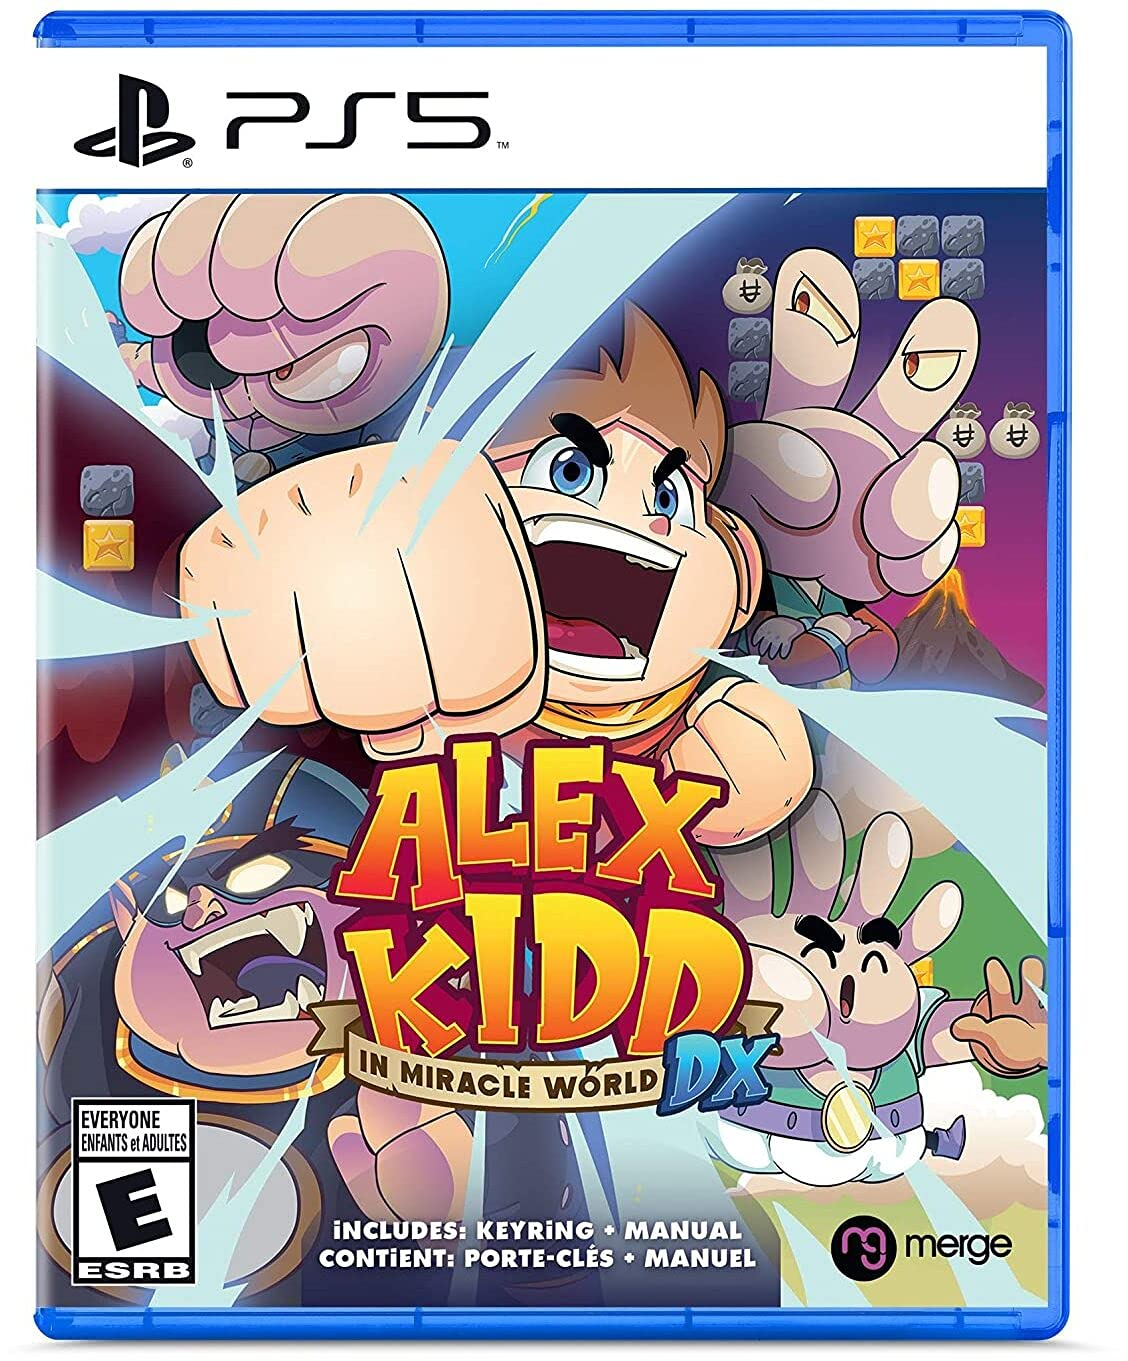 Poster. Alex Kidd in Miracle World DX